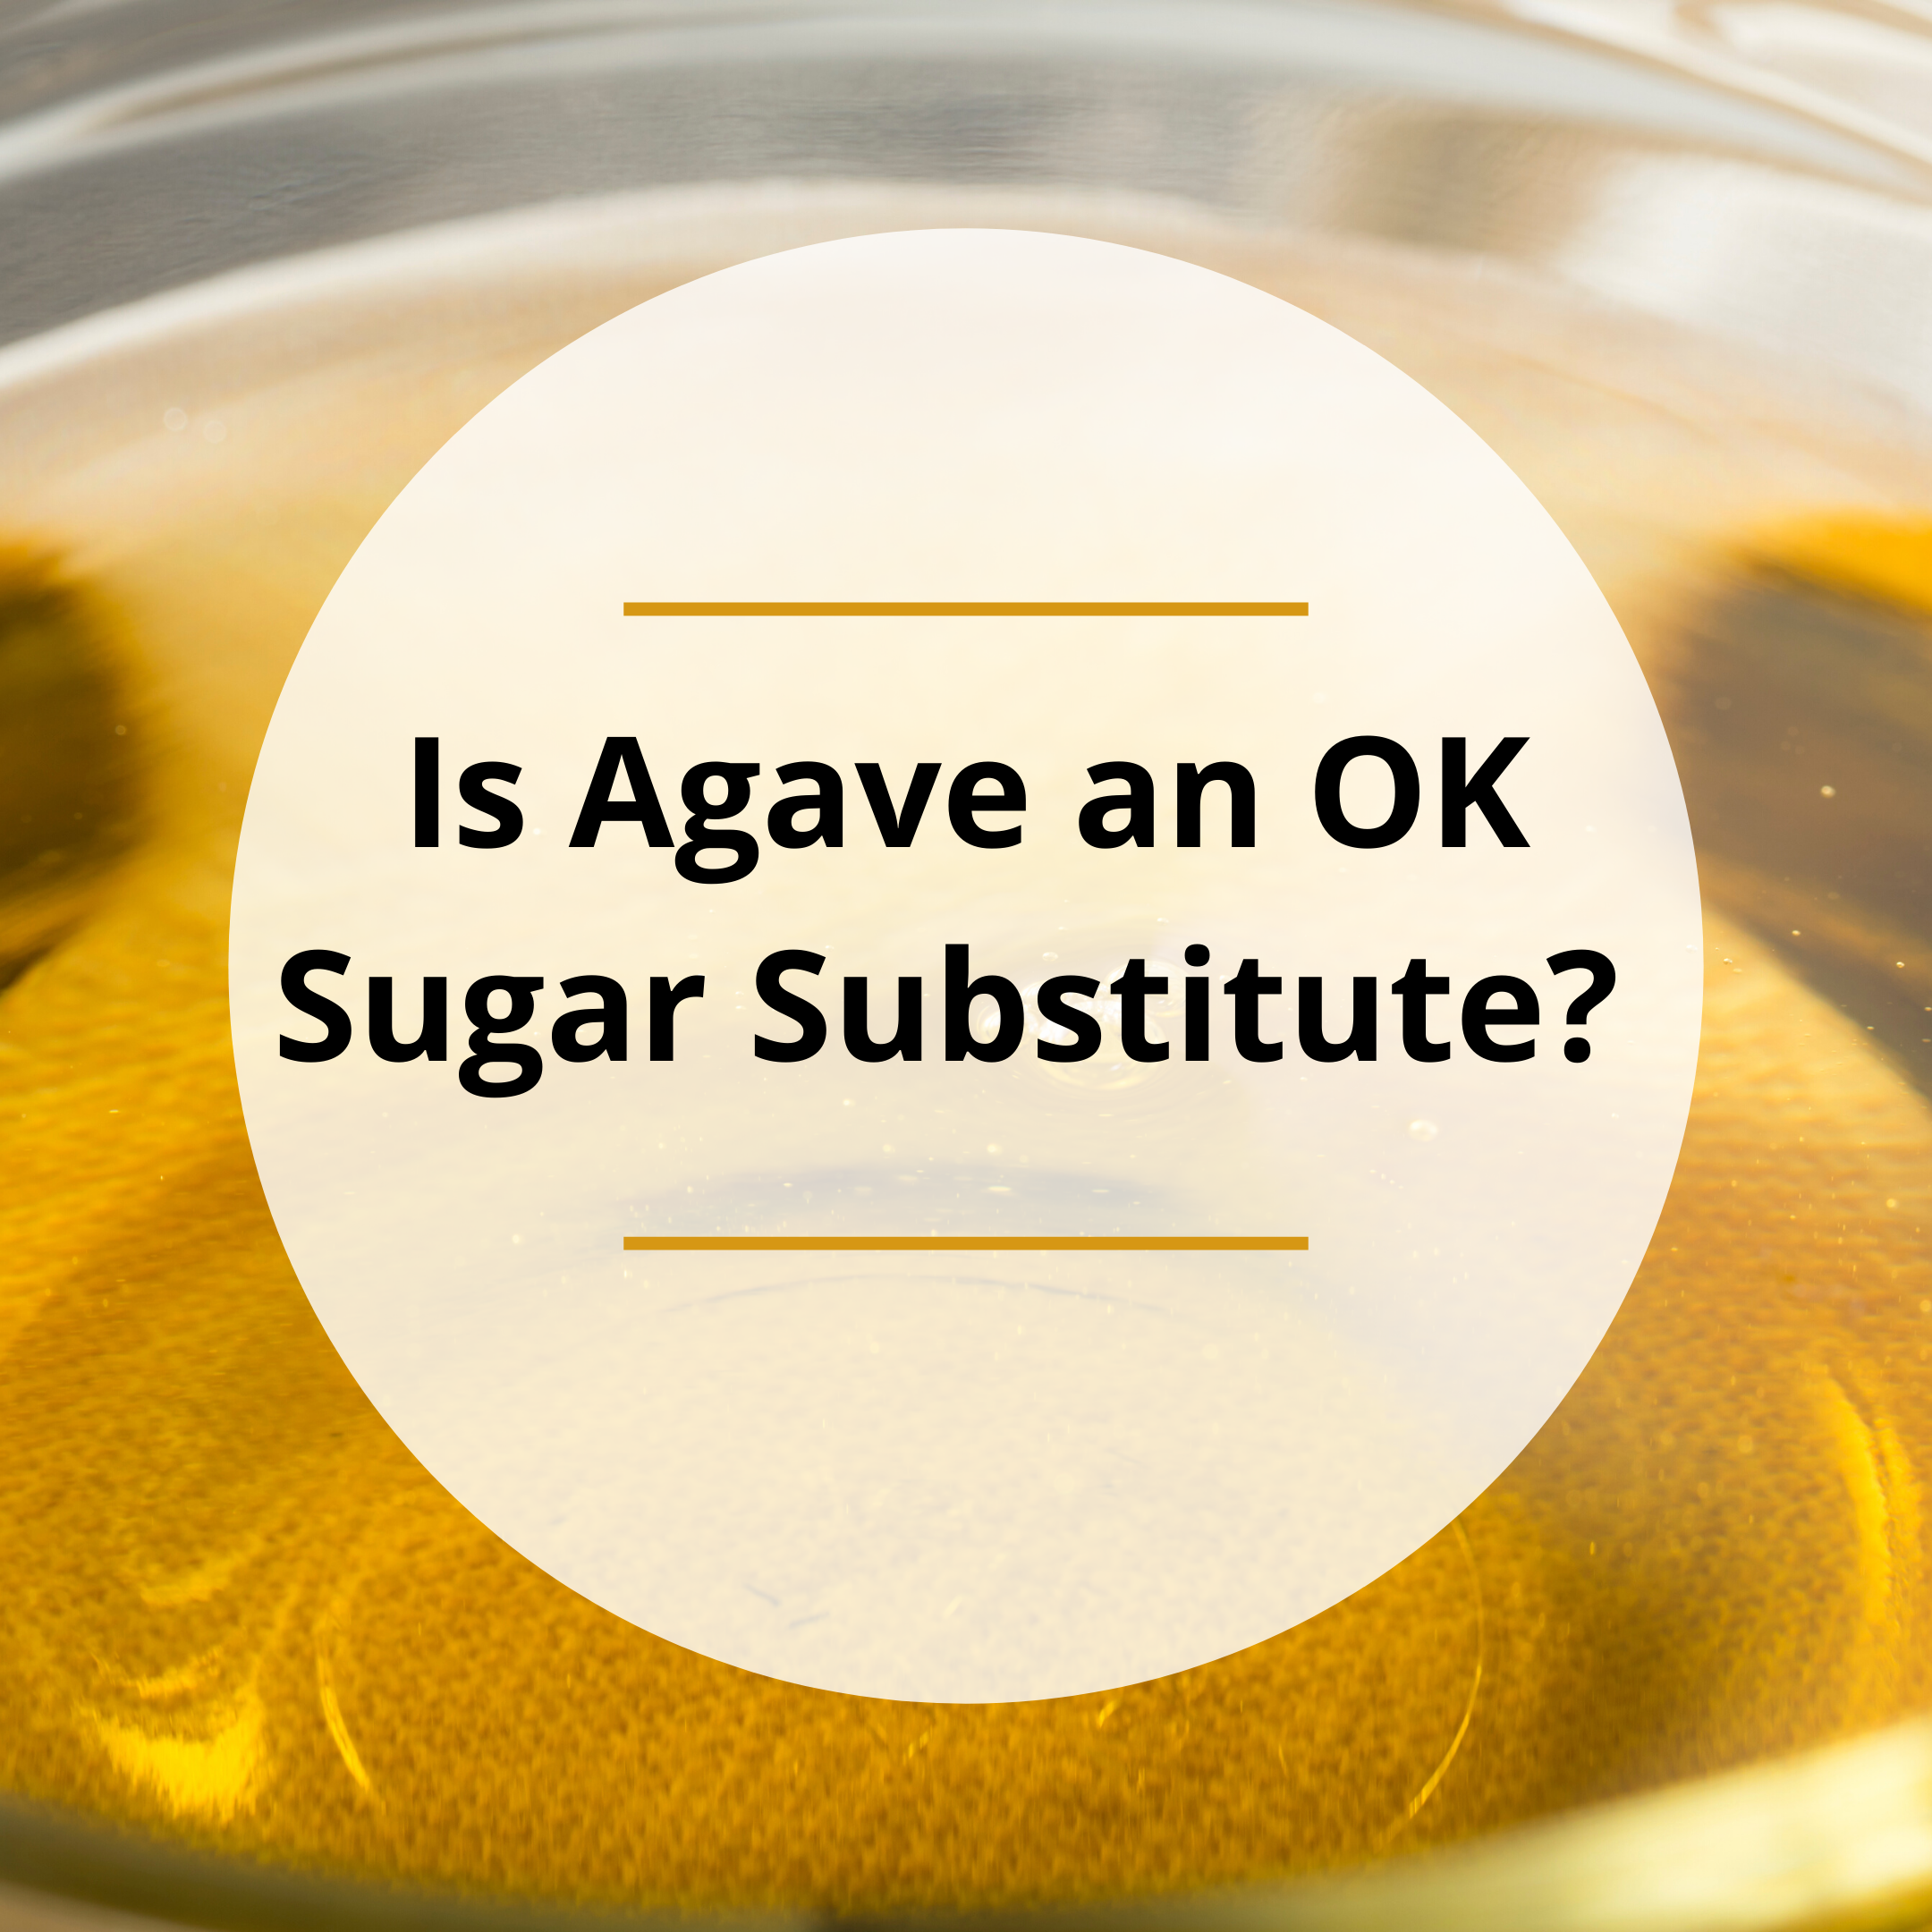 Is Agave an OK Sugar Substitute?